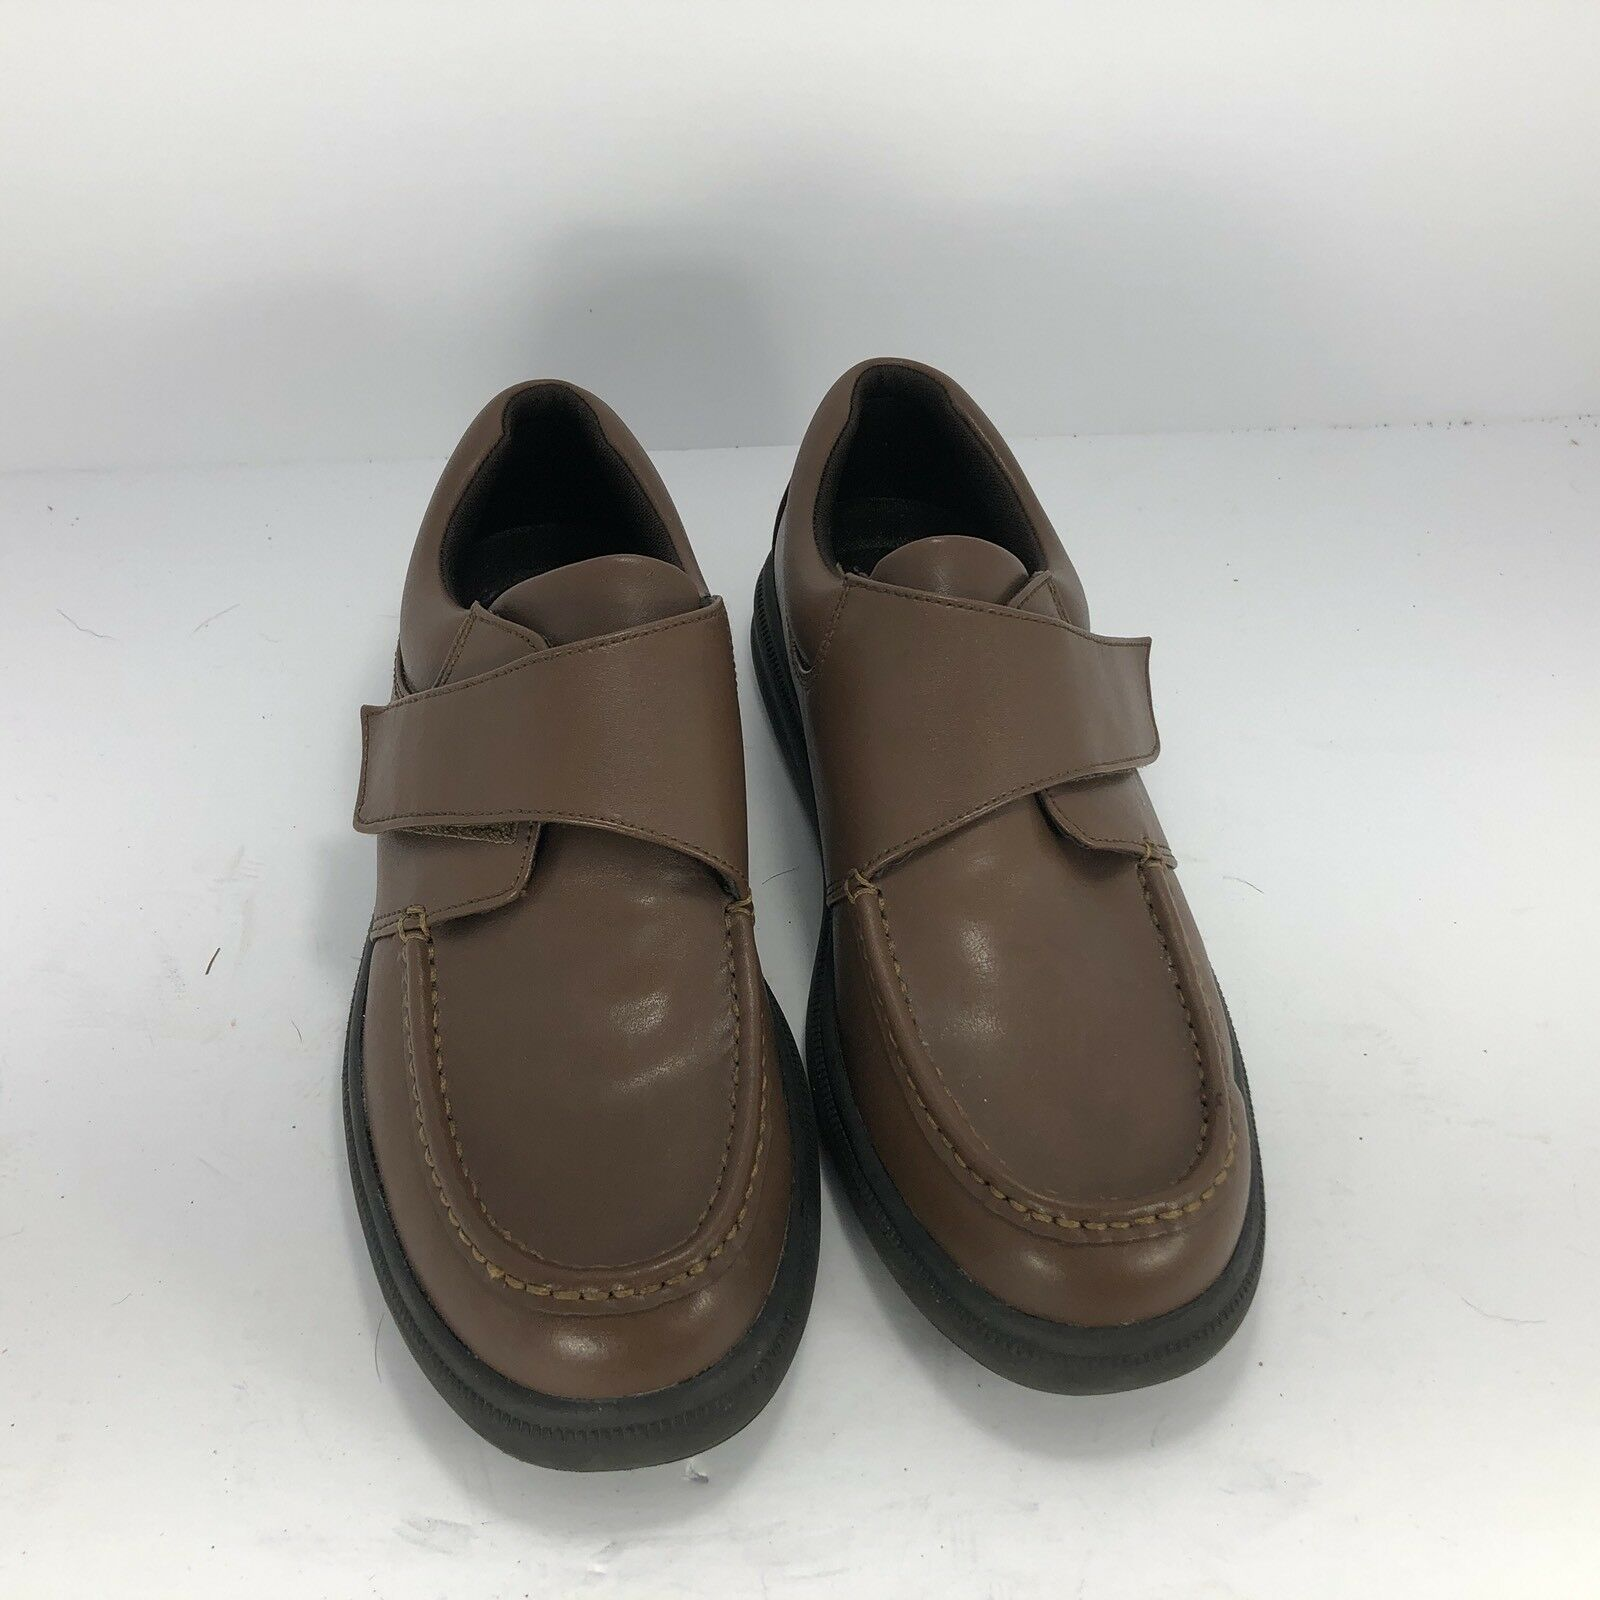 Hush Puppies GIL H18801 Mens Tan Leather Slip On Single Strap Comfort shoes